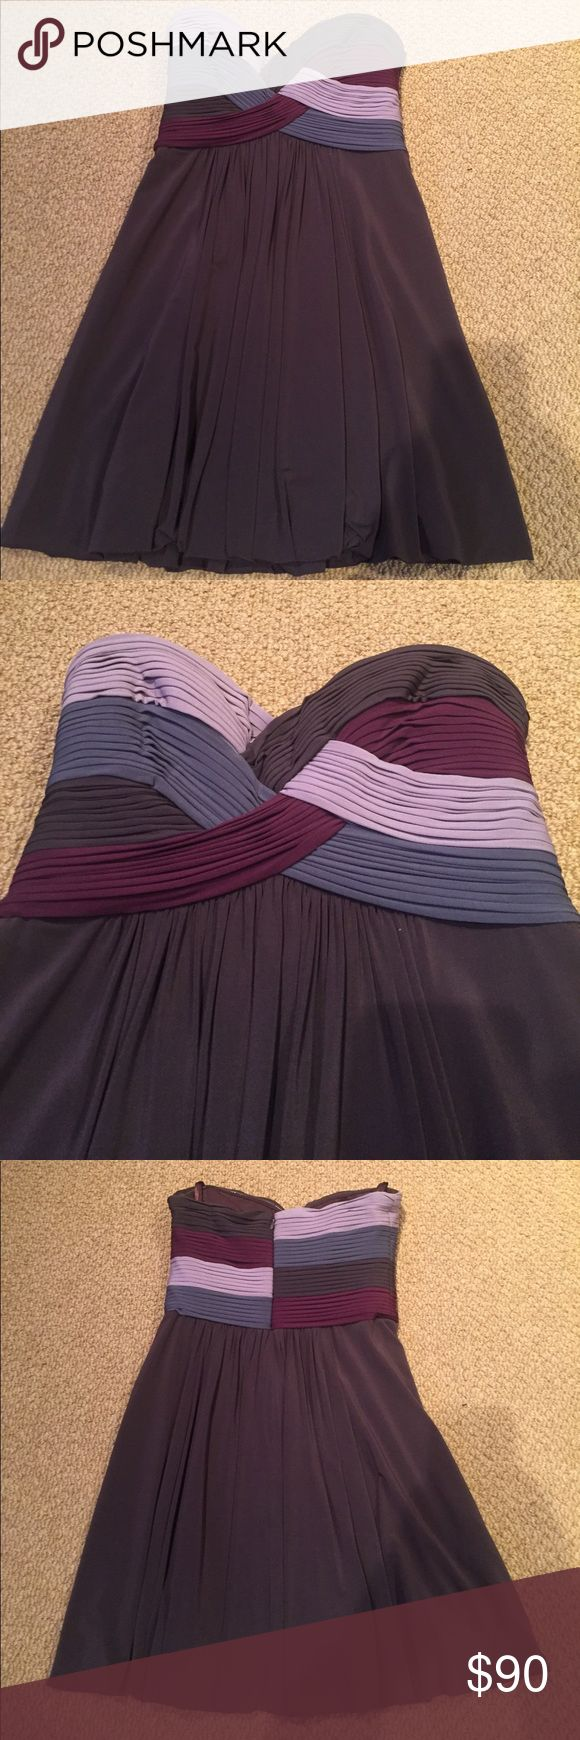 💜BCBGMaxazria Dress💜 Excellent Condition! Gorgeous And Very Flattering! BCBGMaxAzria Dresses Strapless